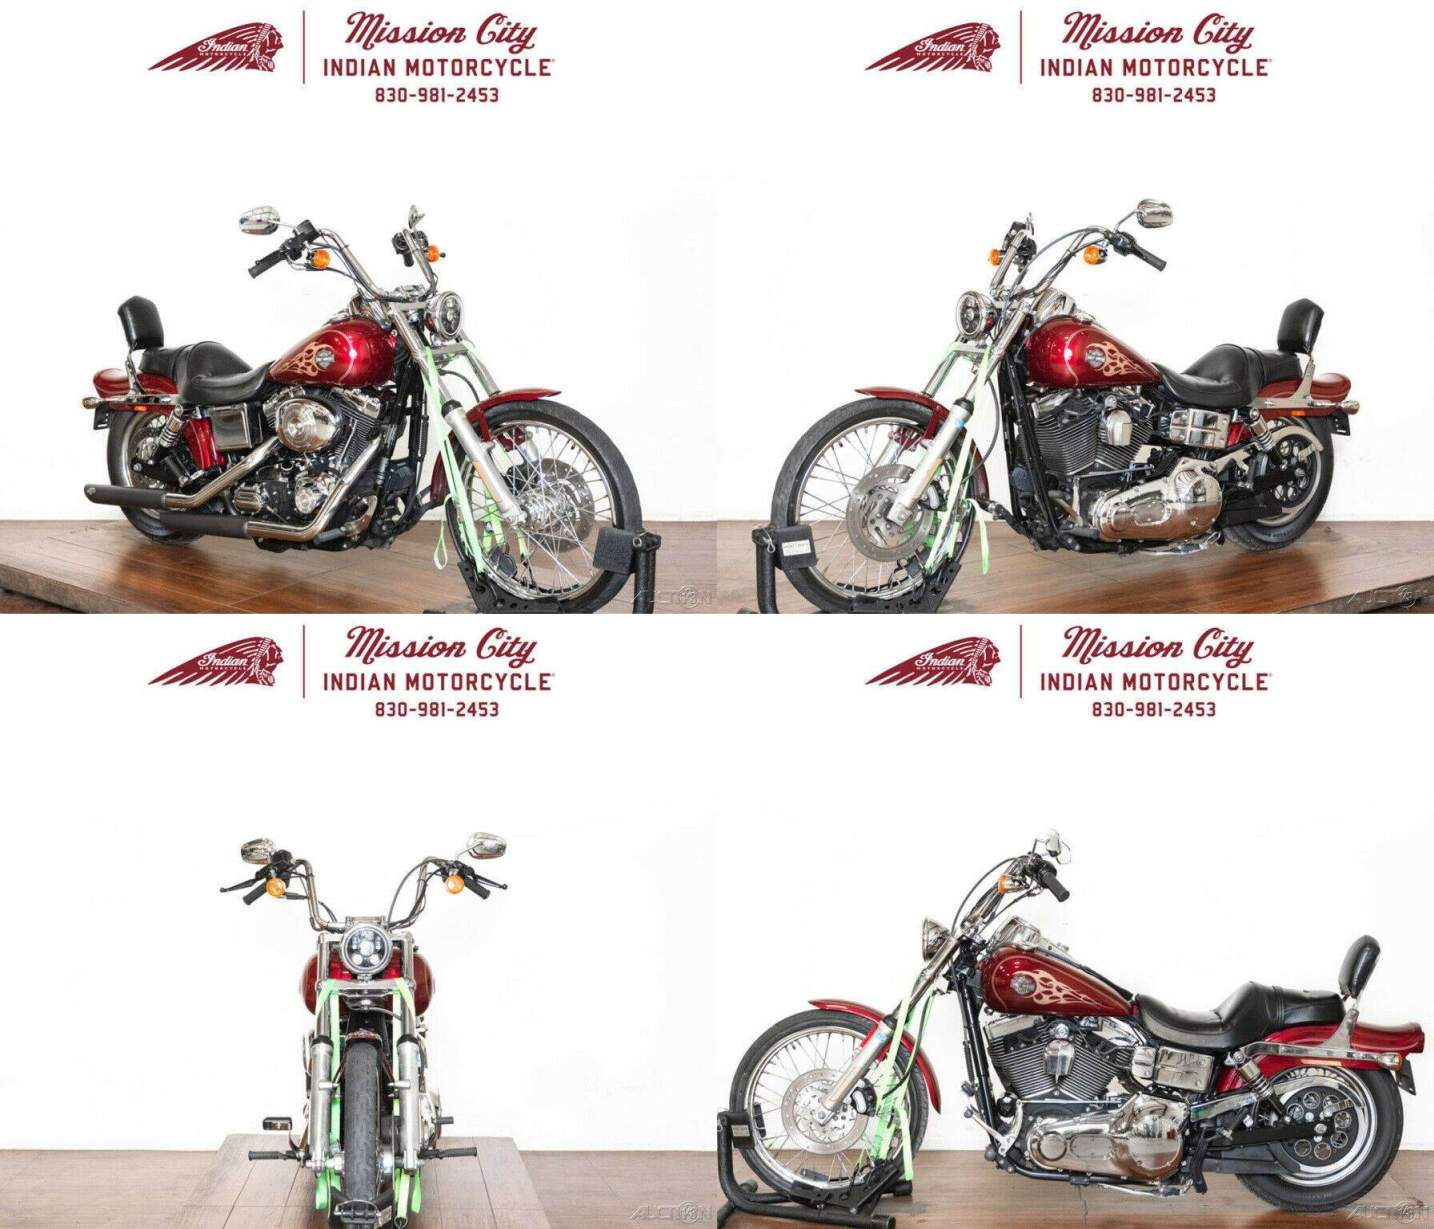 2004 Harley-Davidson Dyna FXDWGI - Wide Glide Lava Red Sunglo used for sale